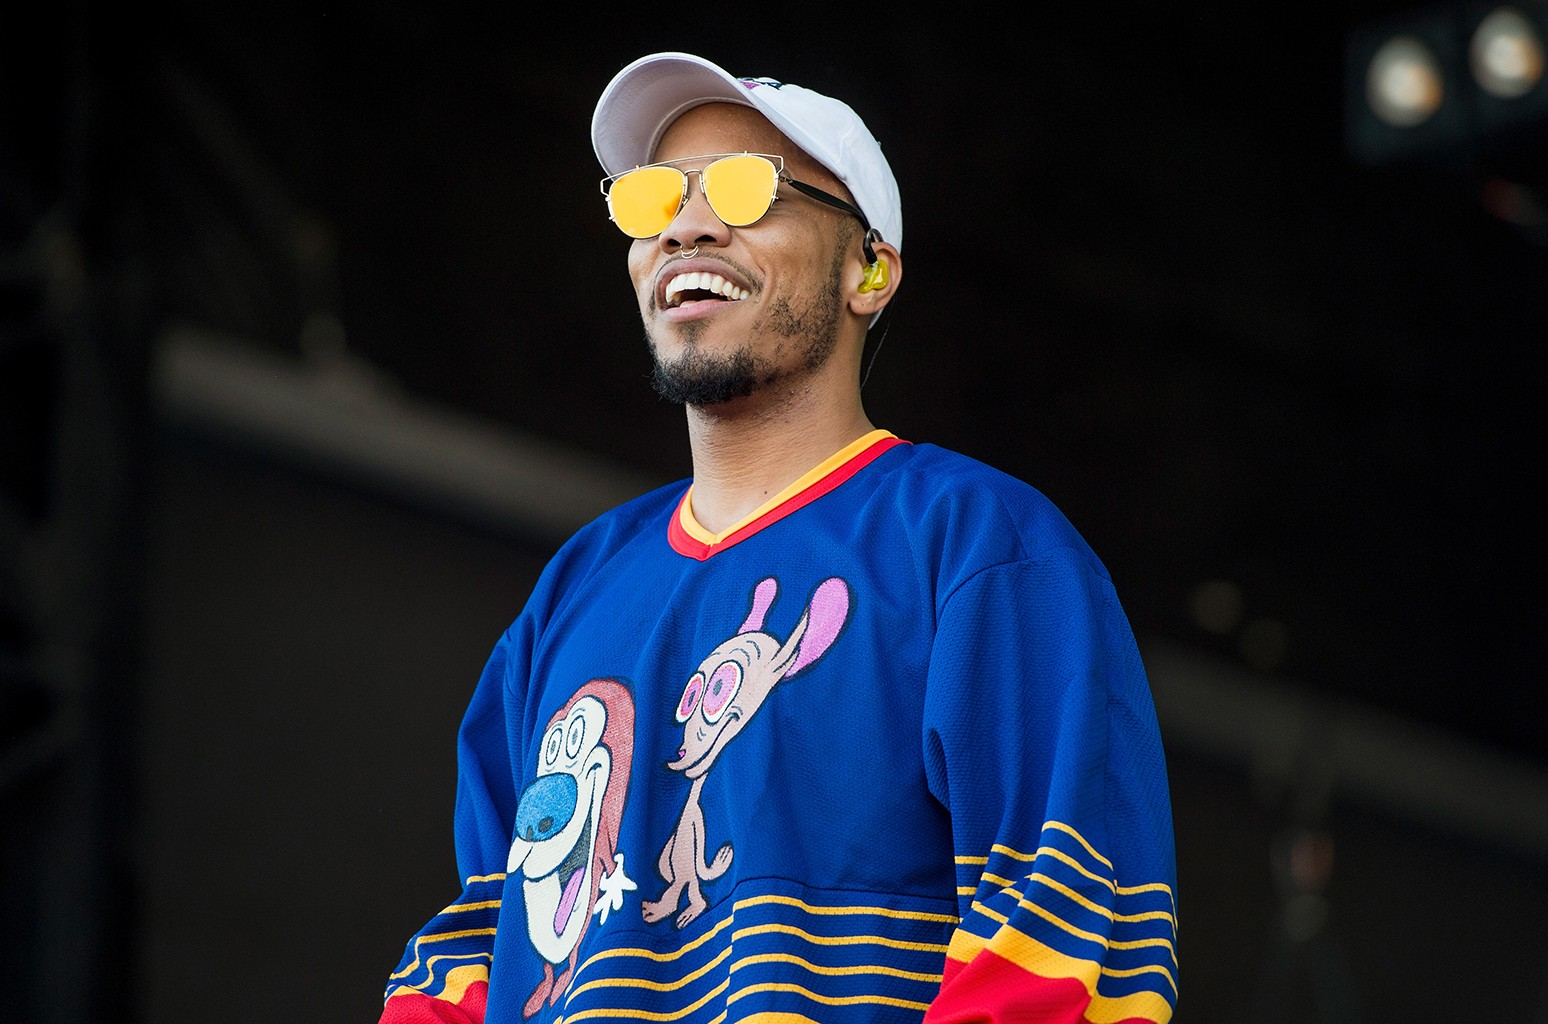 Anderson .Paak performs during The Austin City Limits Music Festival 2016 at Zilker Park on Oct. 8, 2016 in Austin, Texas.